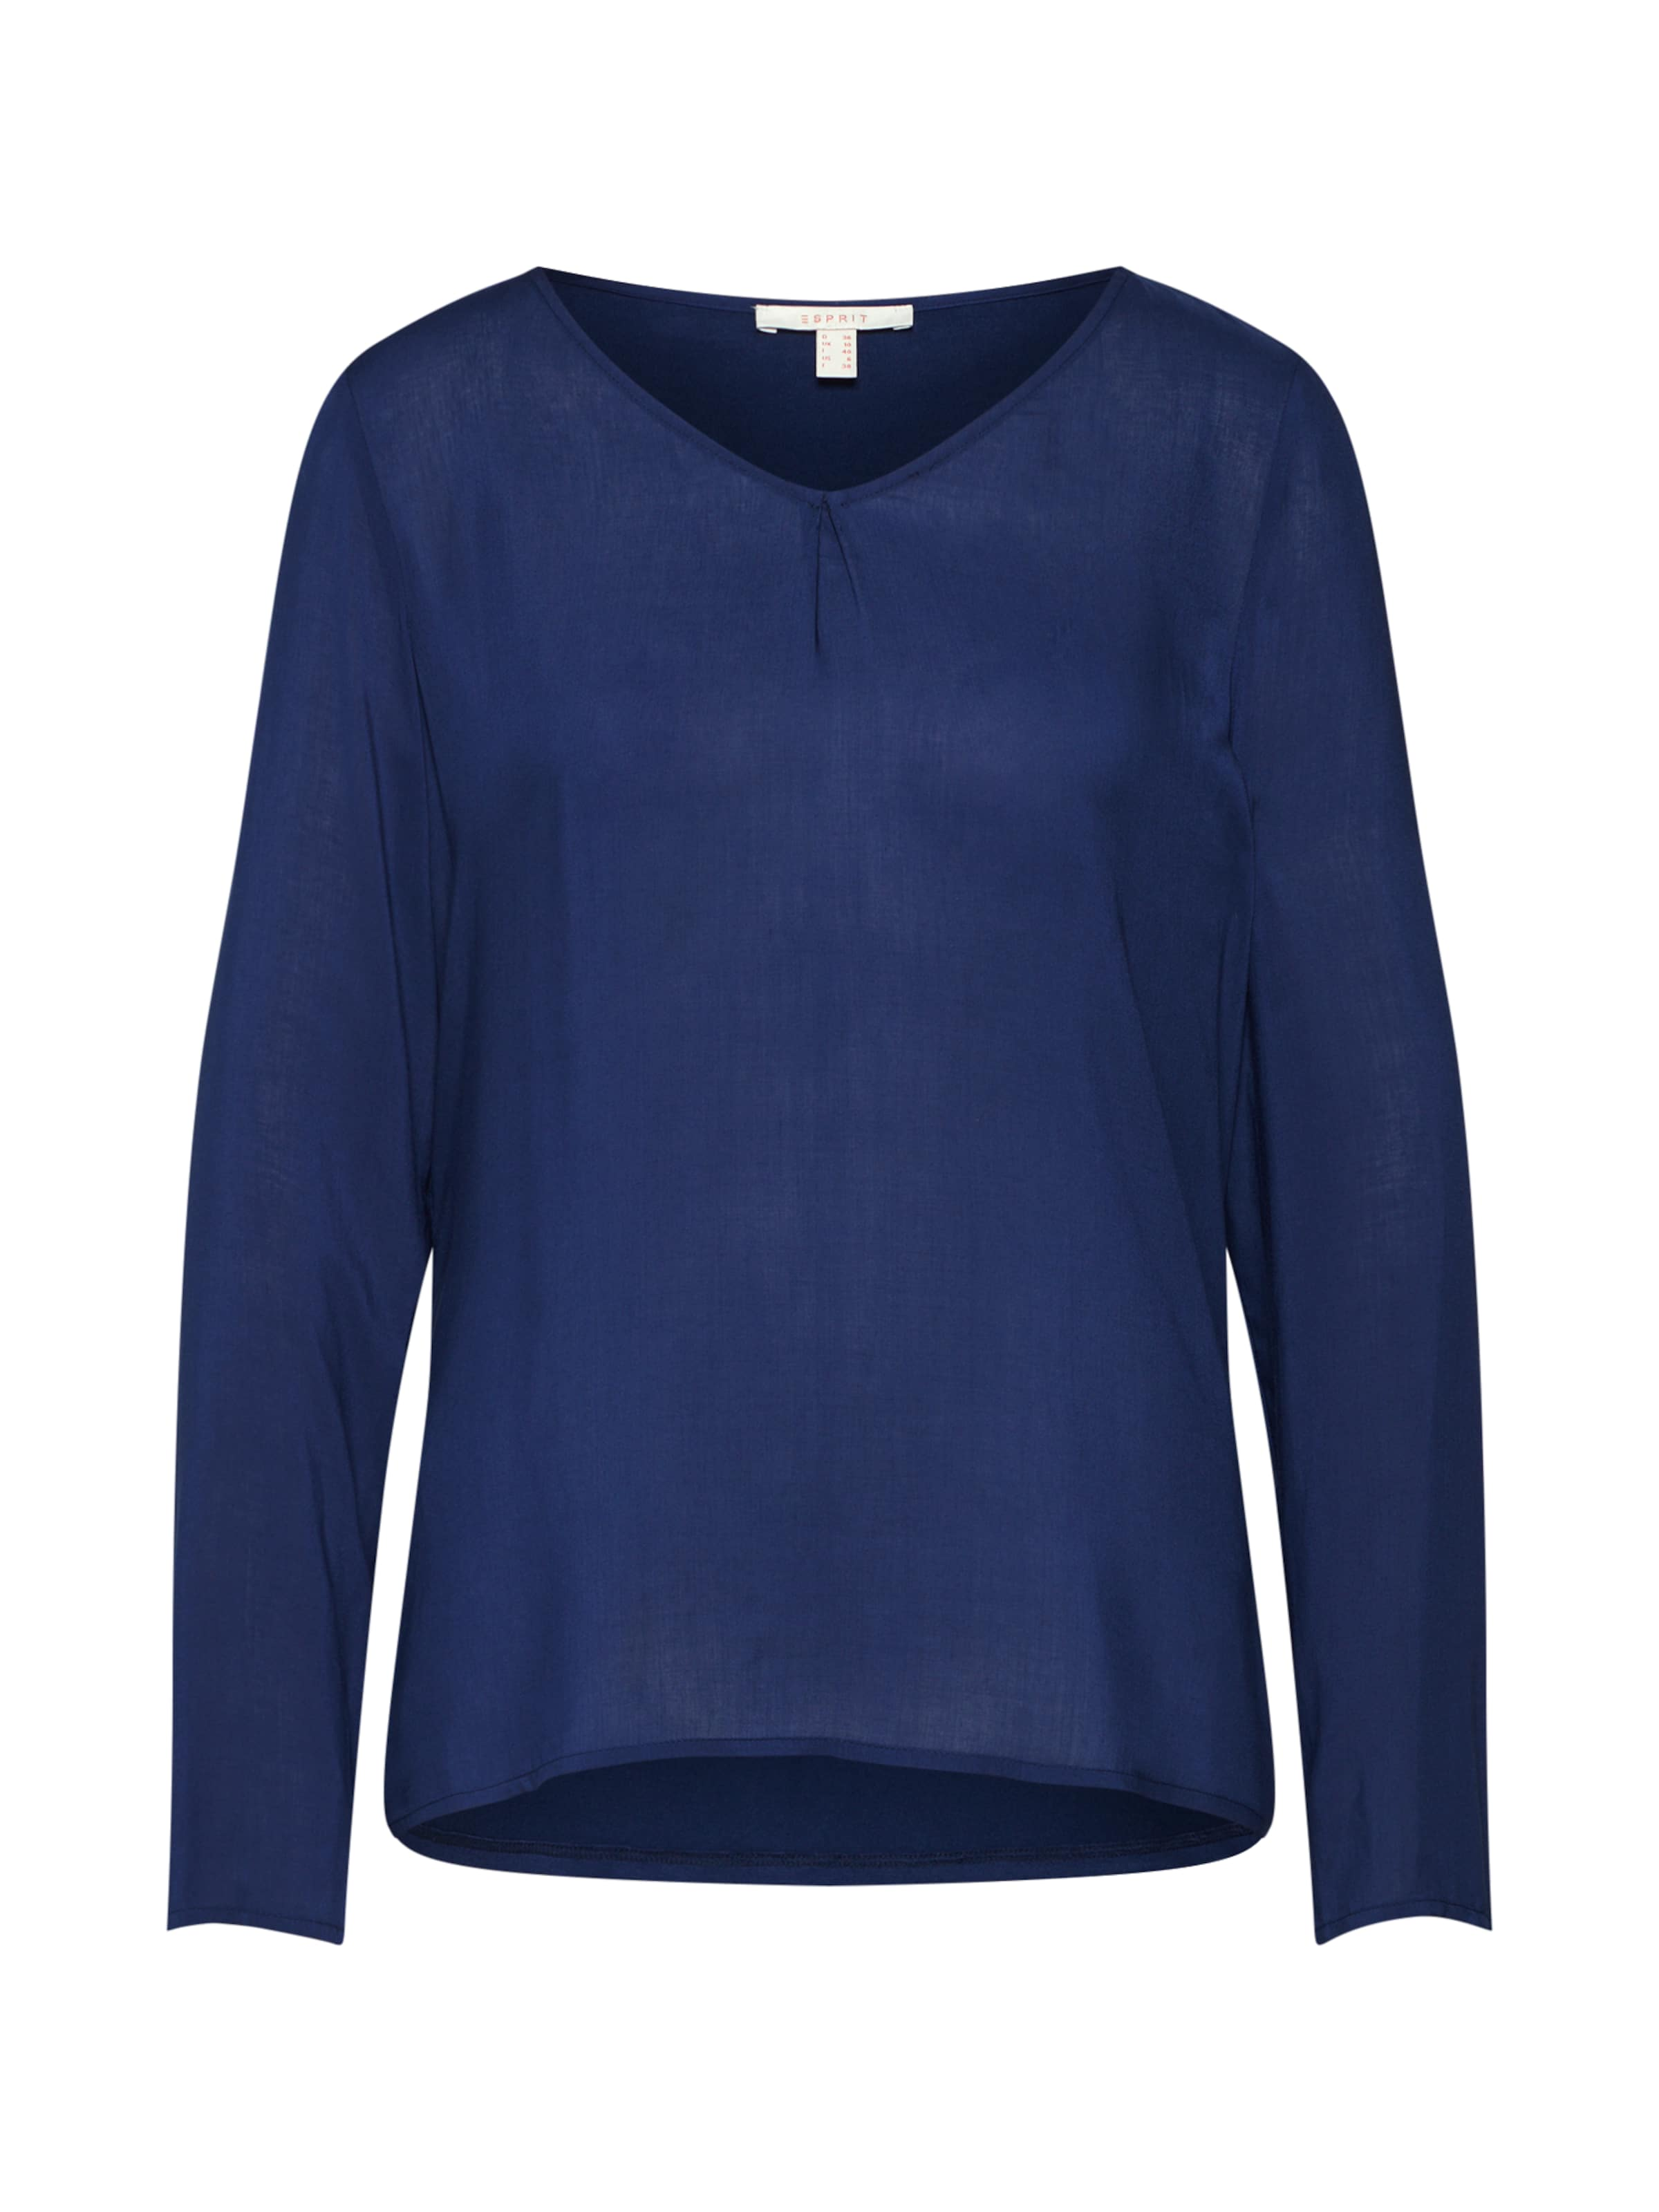 Woven' Navy In Bluse 'blouses Esprit dhQCxtrs